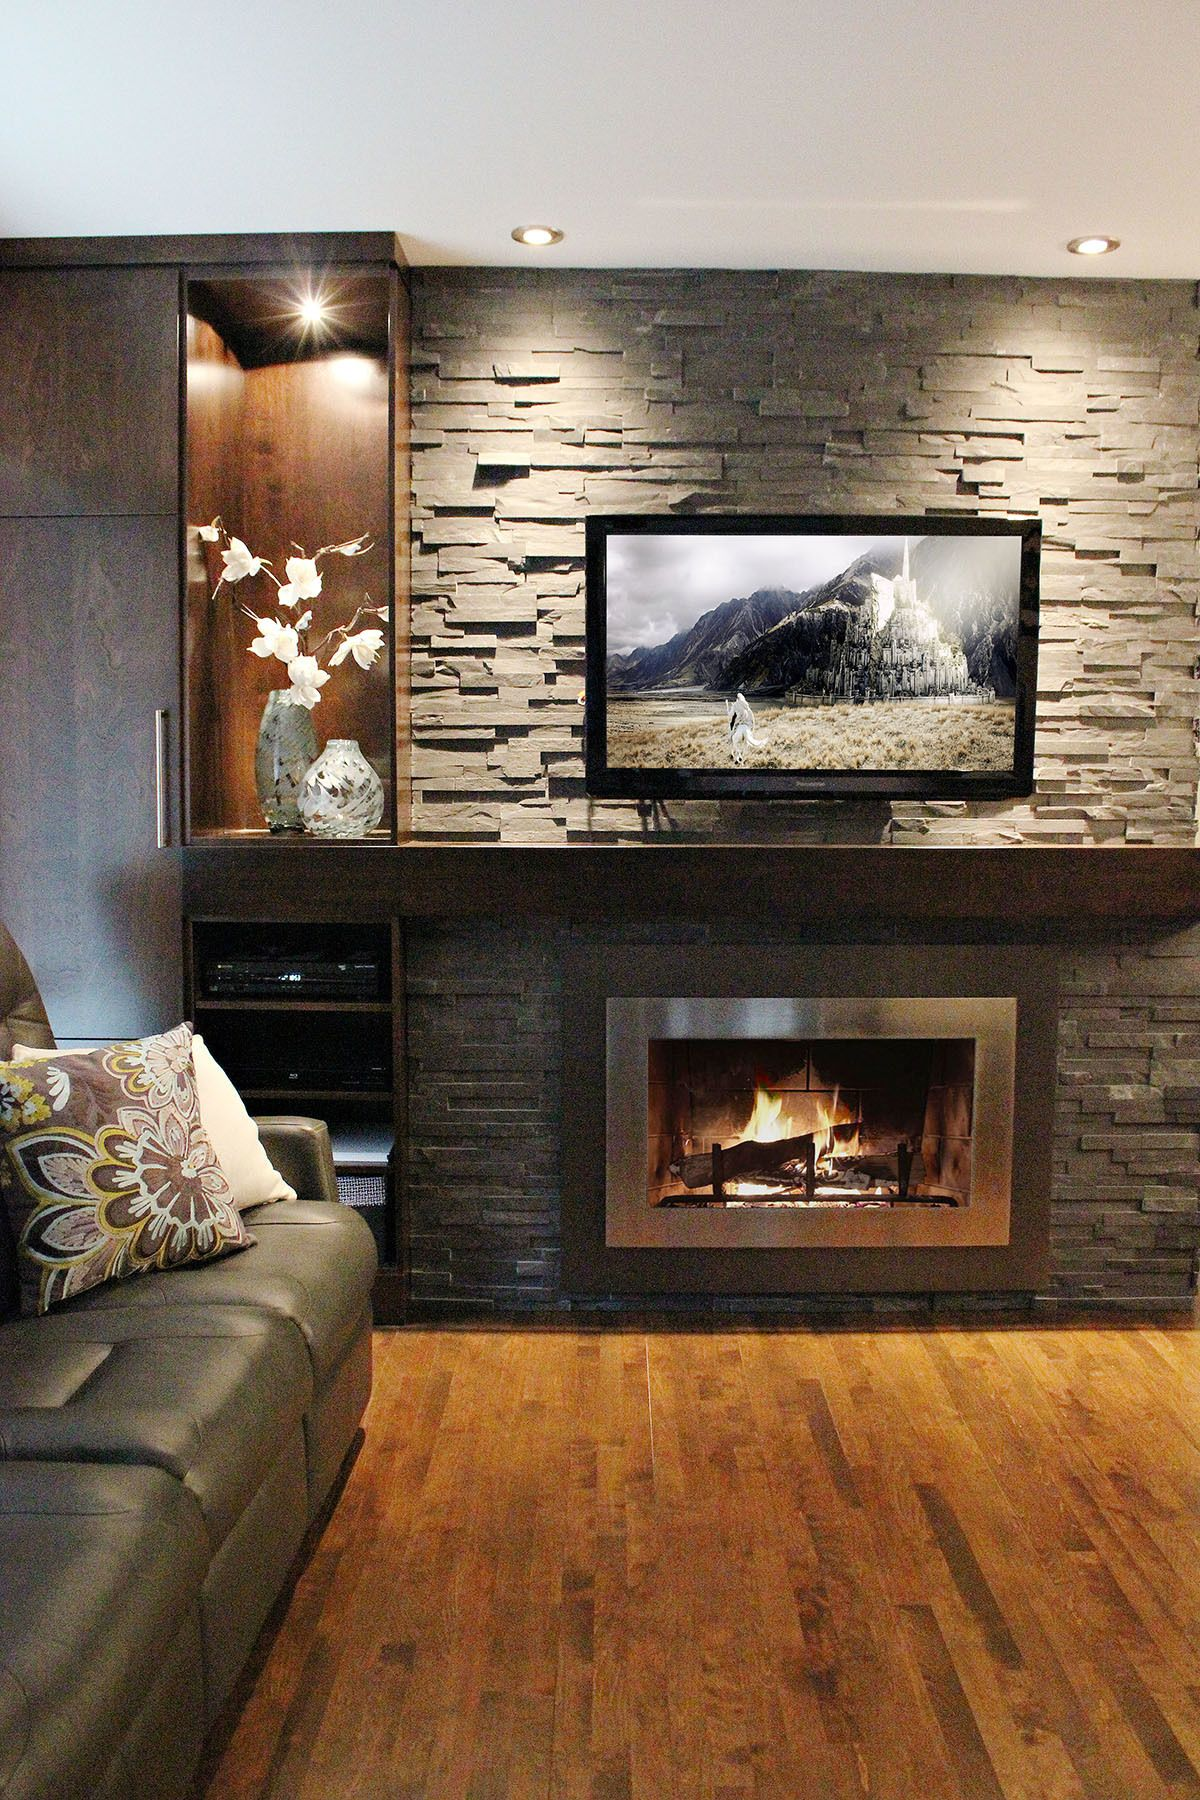 Pin By Natassia LoveGod On Fireplace Ideas In 2019